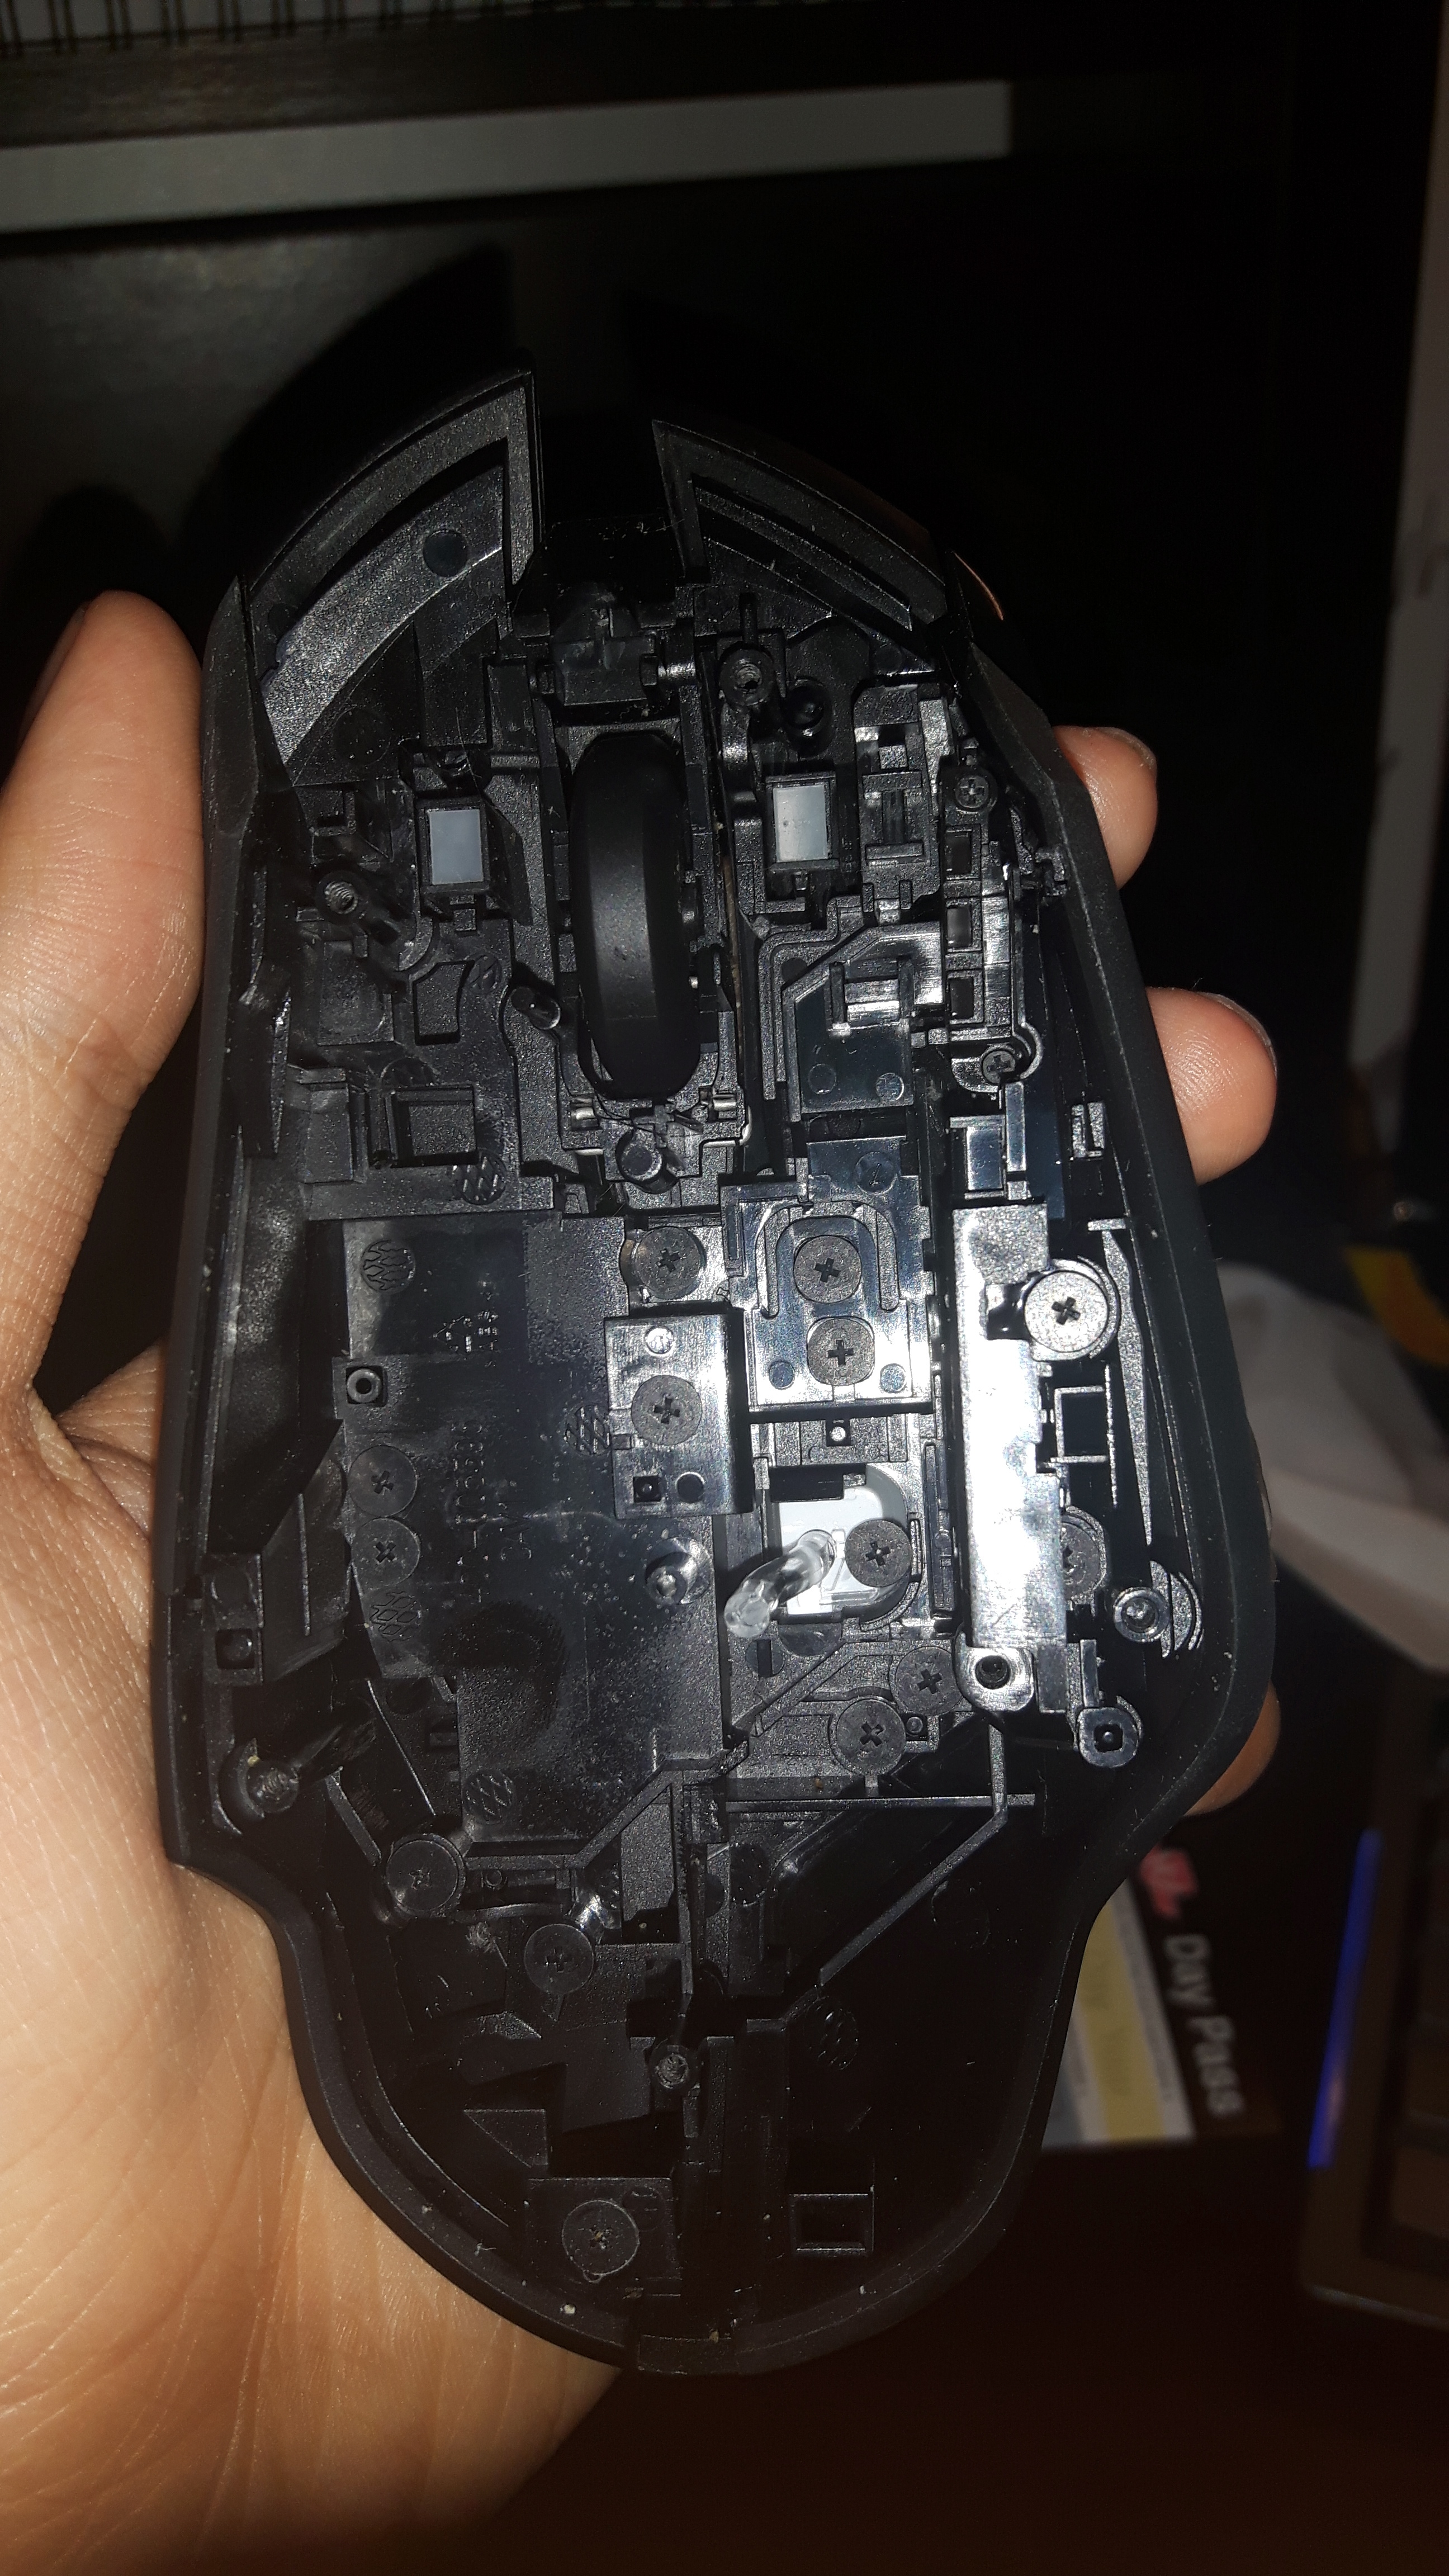 Disassembly Logitech G402 (for cleaning) - Guides and